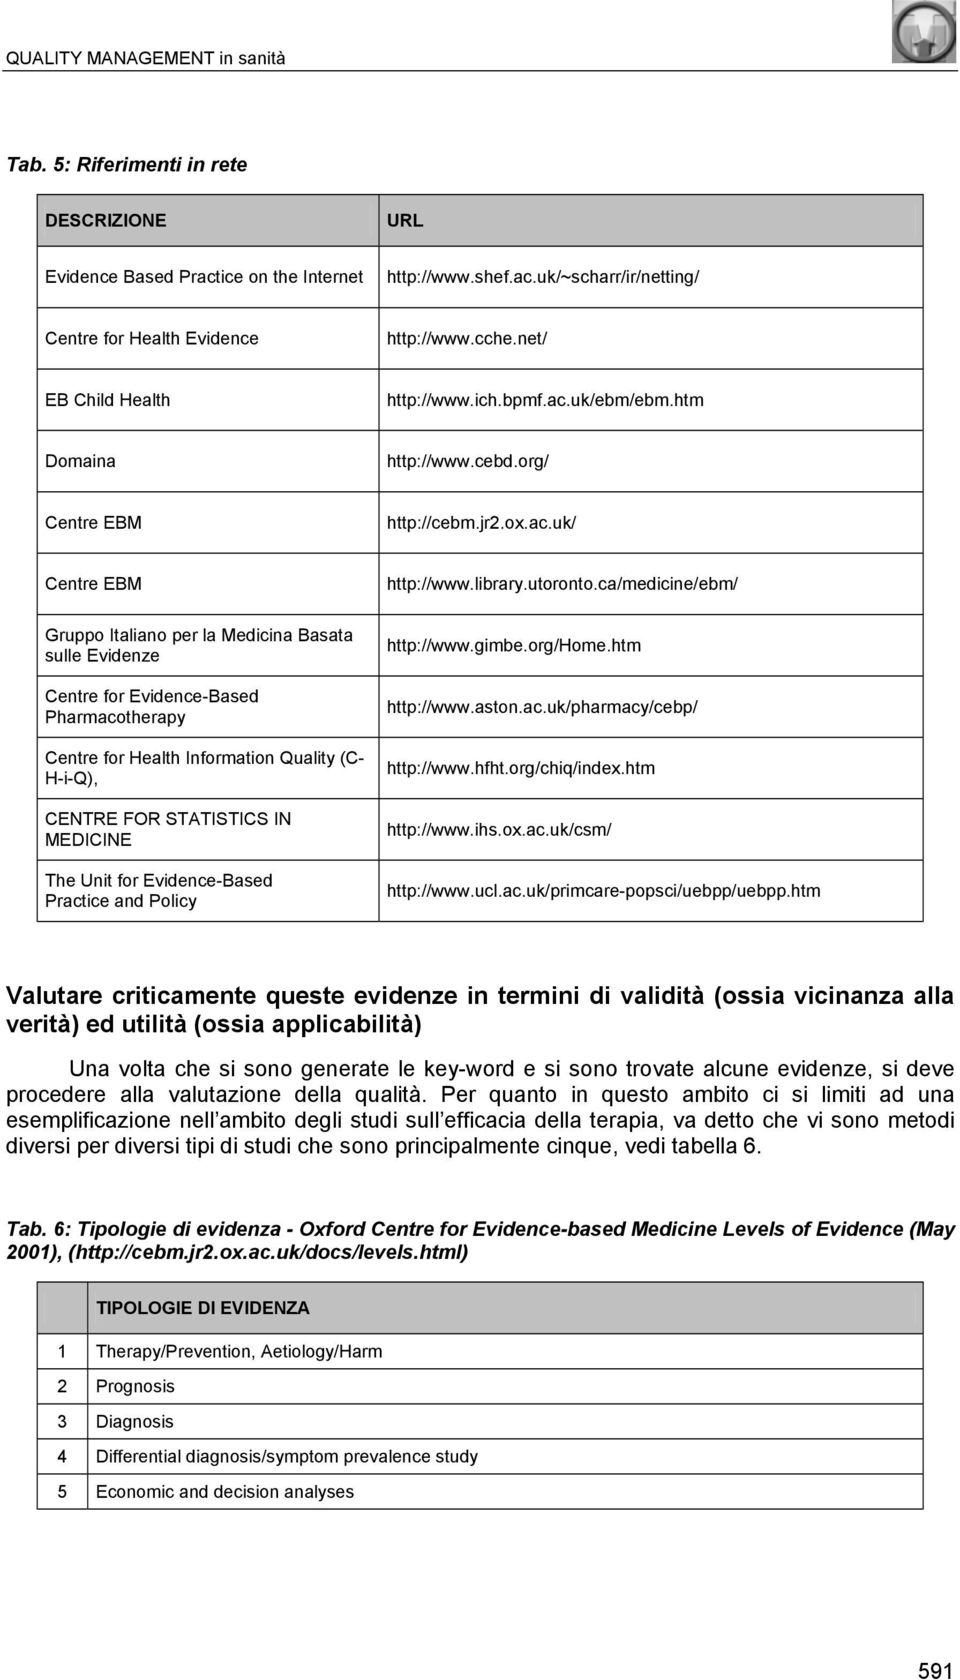 ca/medicine/ebm/ Gruppo Italiano per la Medicina Basata sulle Evidenze Centre for Evidence-Based Pharmacotherapy Centre for Health Information Quality (C- H-i-Q), CENTRE FOR STATISTICS IN MEDICINE